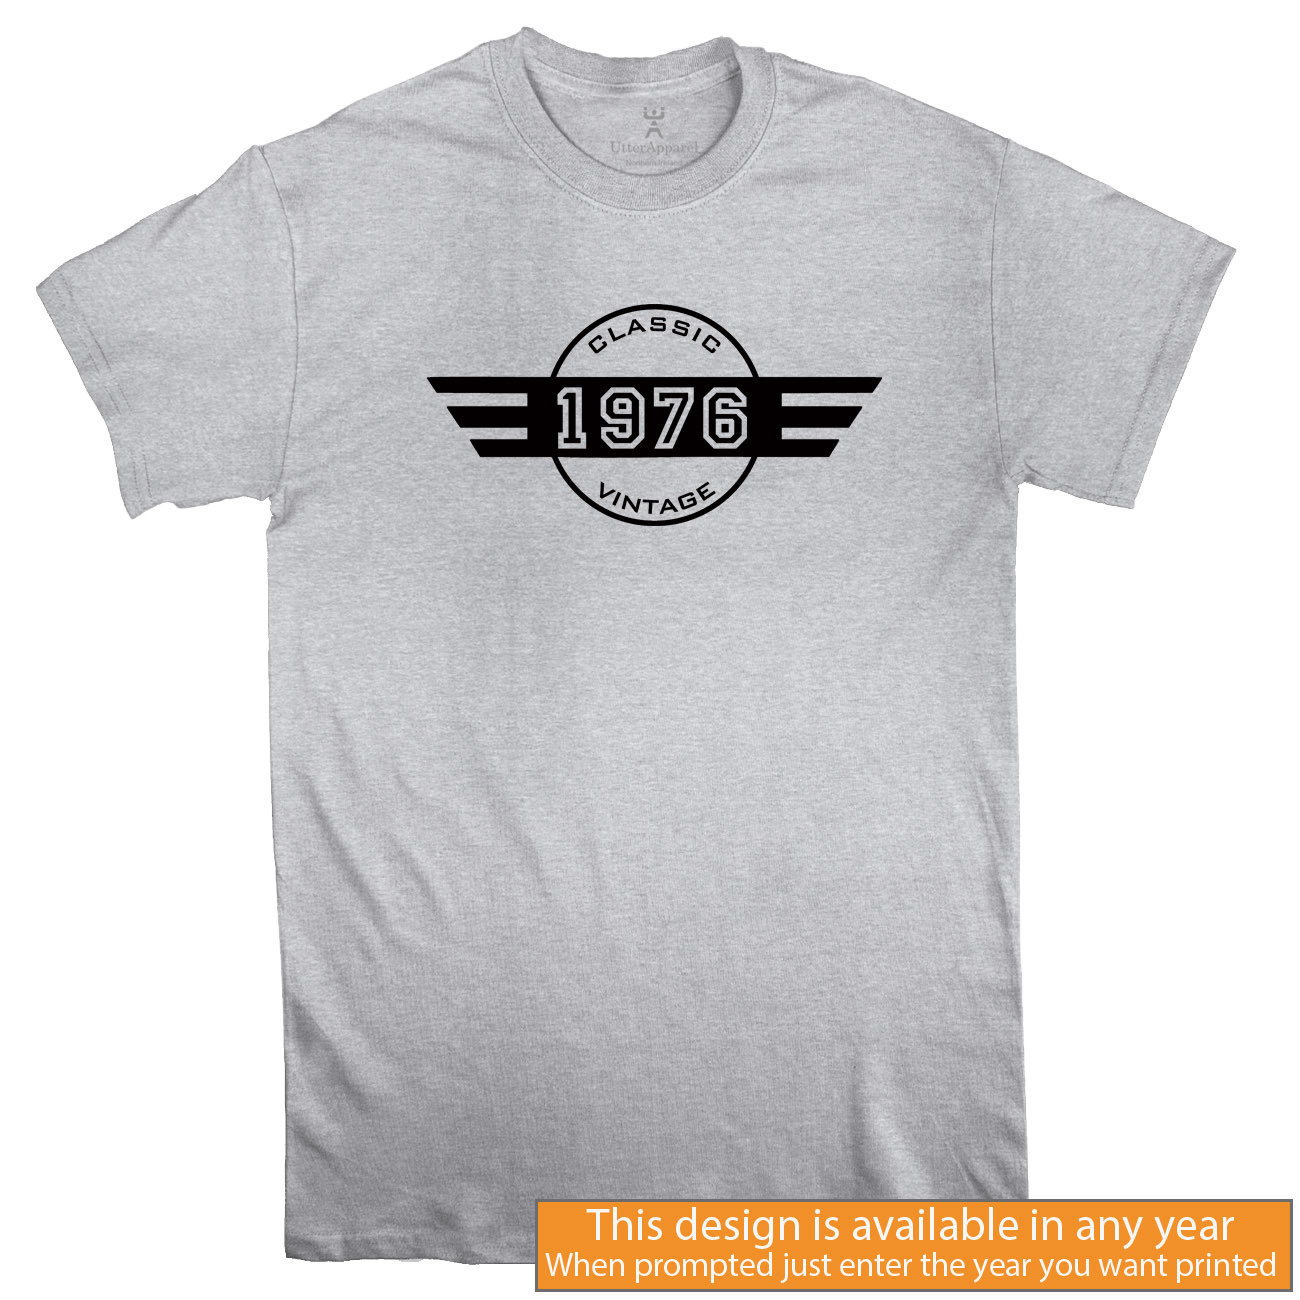 9f4a7ee10 Sport Grey Classic Vintage - Choose any year Men T-shirt, Sizes S ...